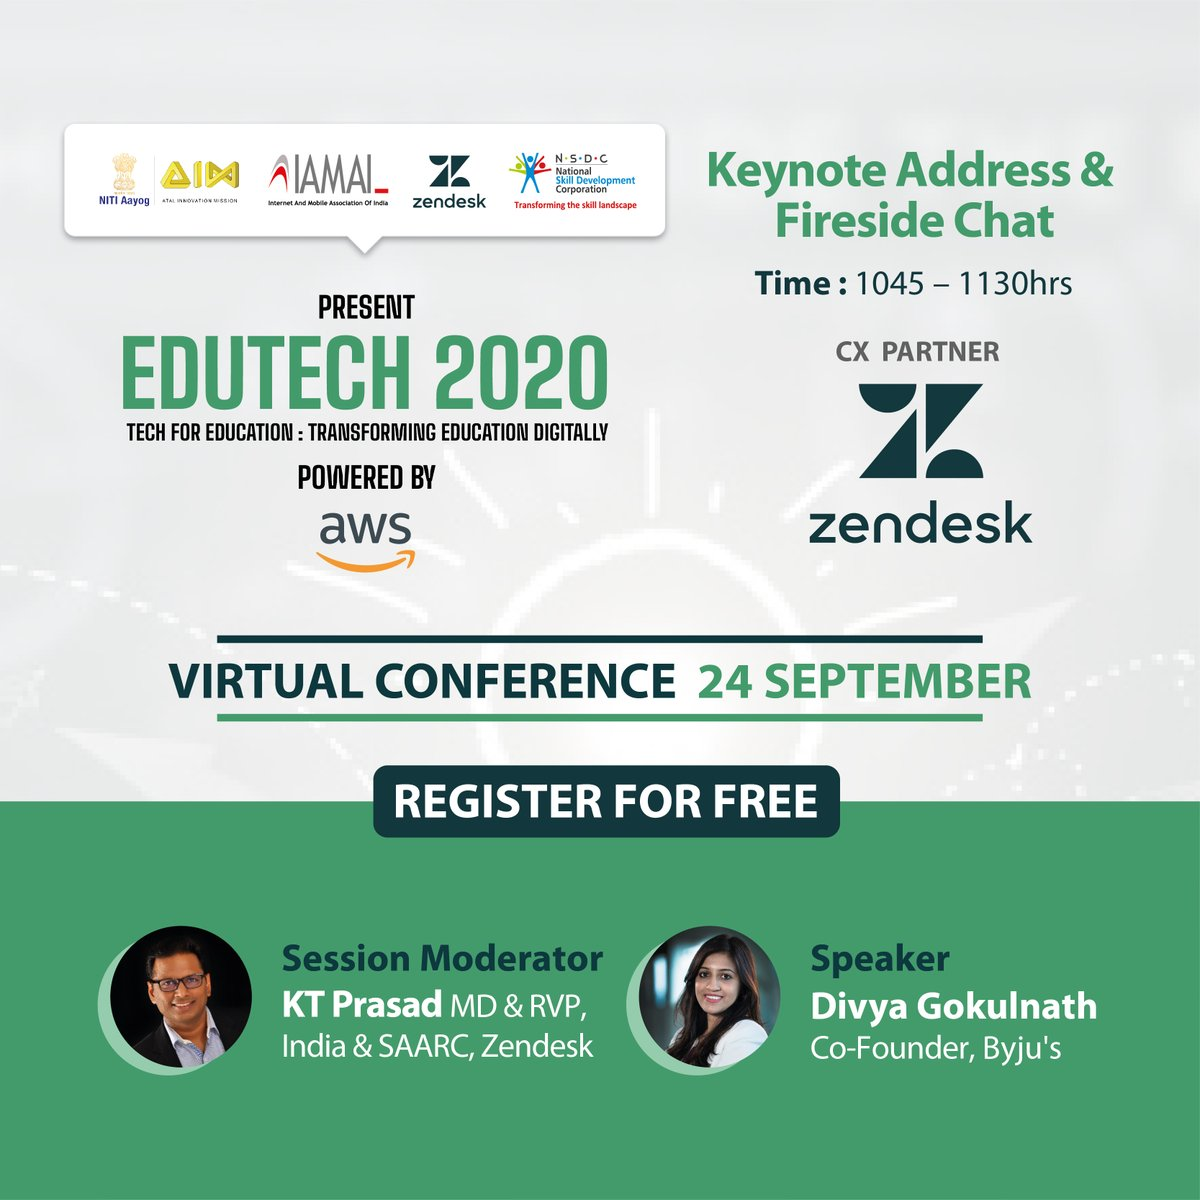 Join in live at 10:45hrs to watch a fireside chat with   KT Prasad & Divya Gokulnath  @Zendesk Watch live at https://t.co/fFJx7aaeUk  #Edutech2020 #edapp #india #highered #remotelearning #student #edutech #online #college #onlinecourses #startup #coding #teacherlife #training https://t.co/bBrxDk3BvE